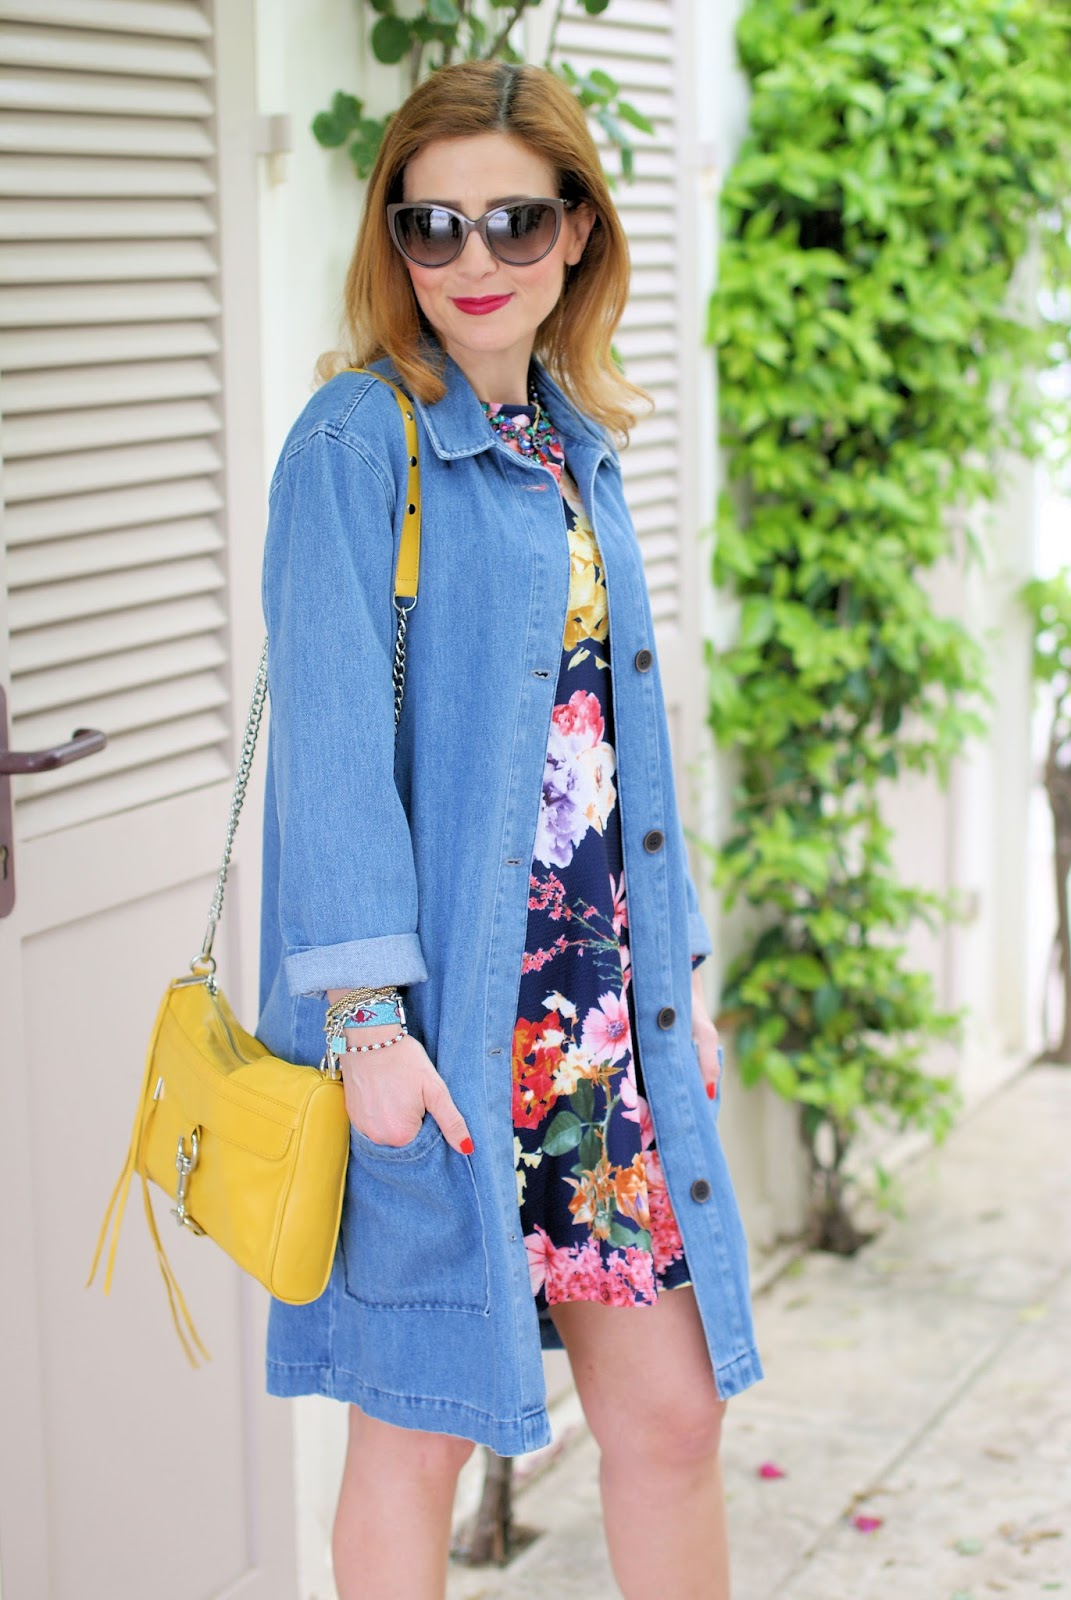 Zara denim coat on Fashion and Cookies fashion blog, fashion blogger style